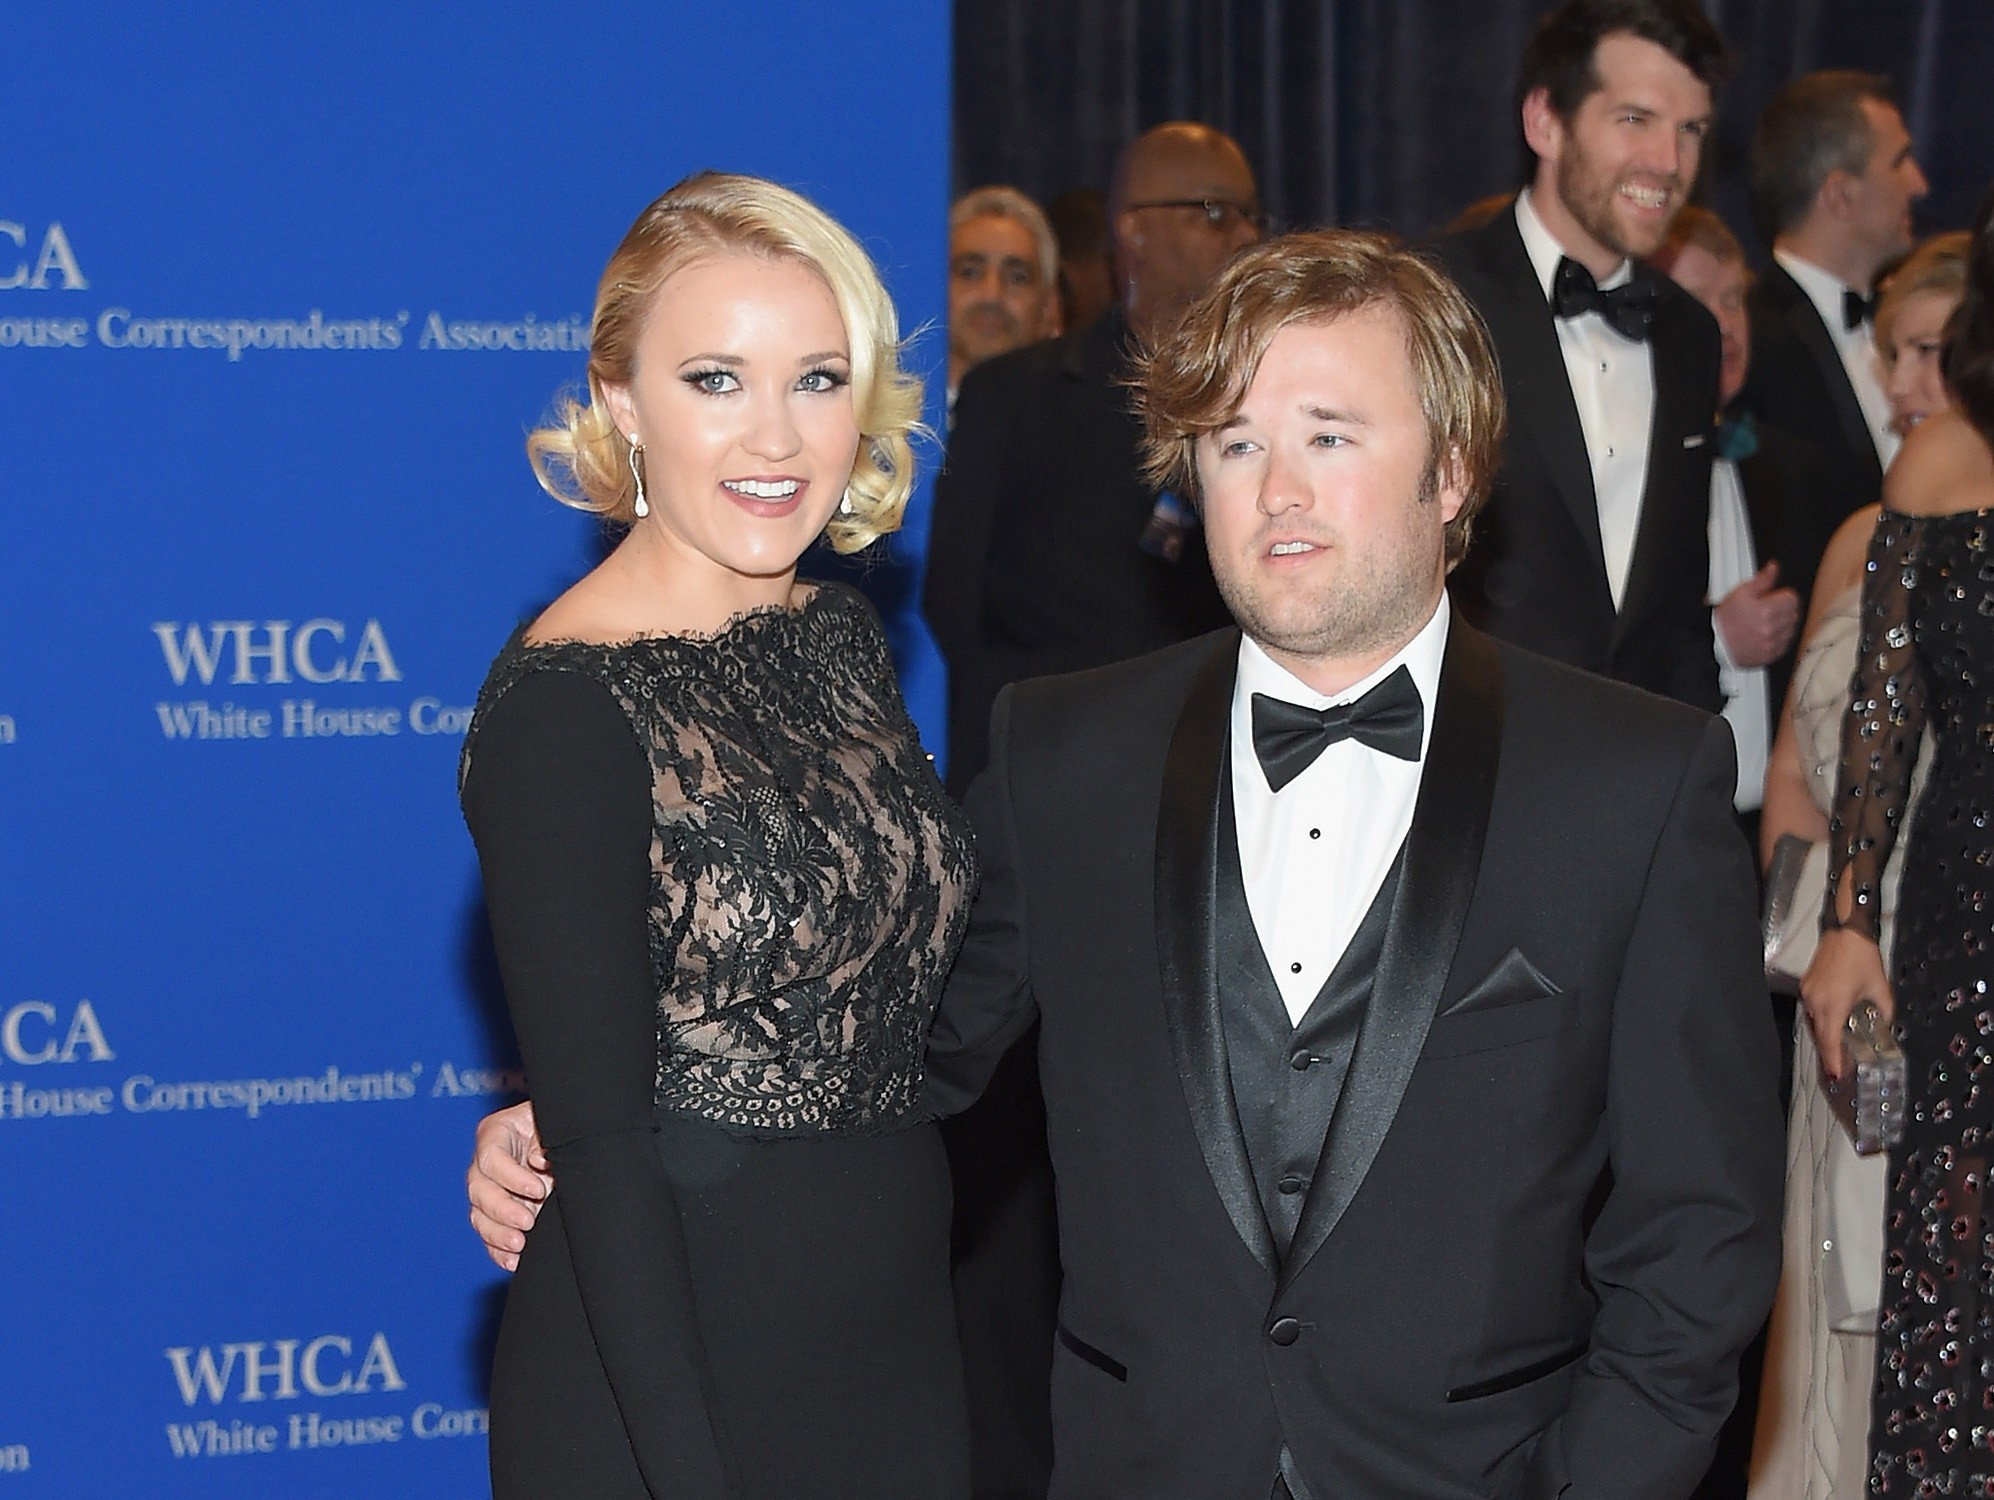 Emily Osment e Haley Joel Osment (Foto: Getty Images)